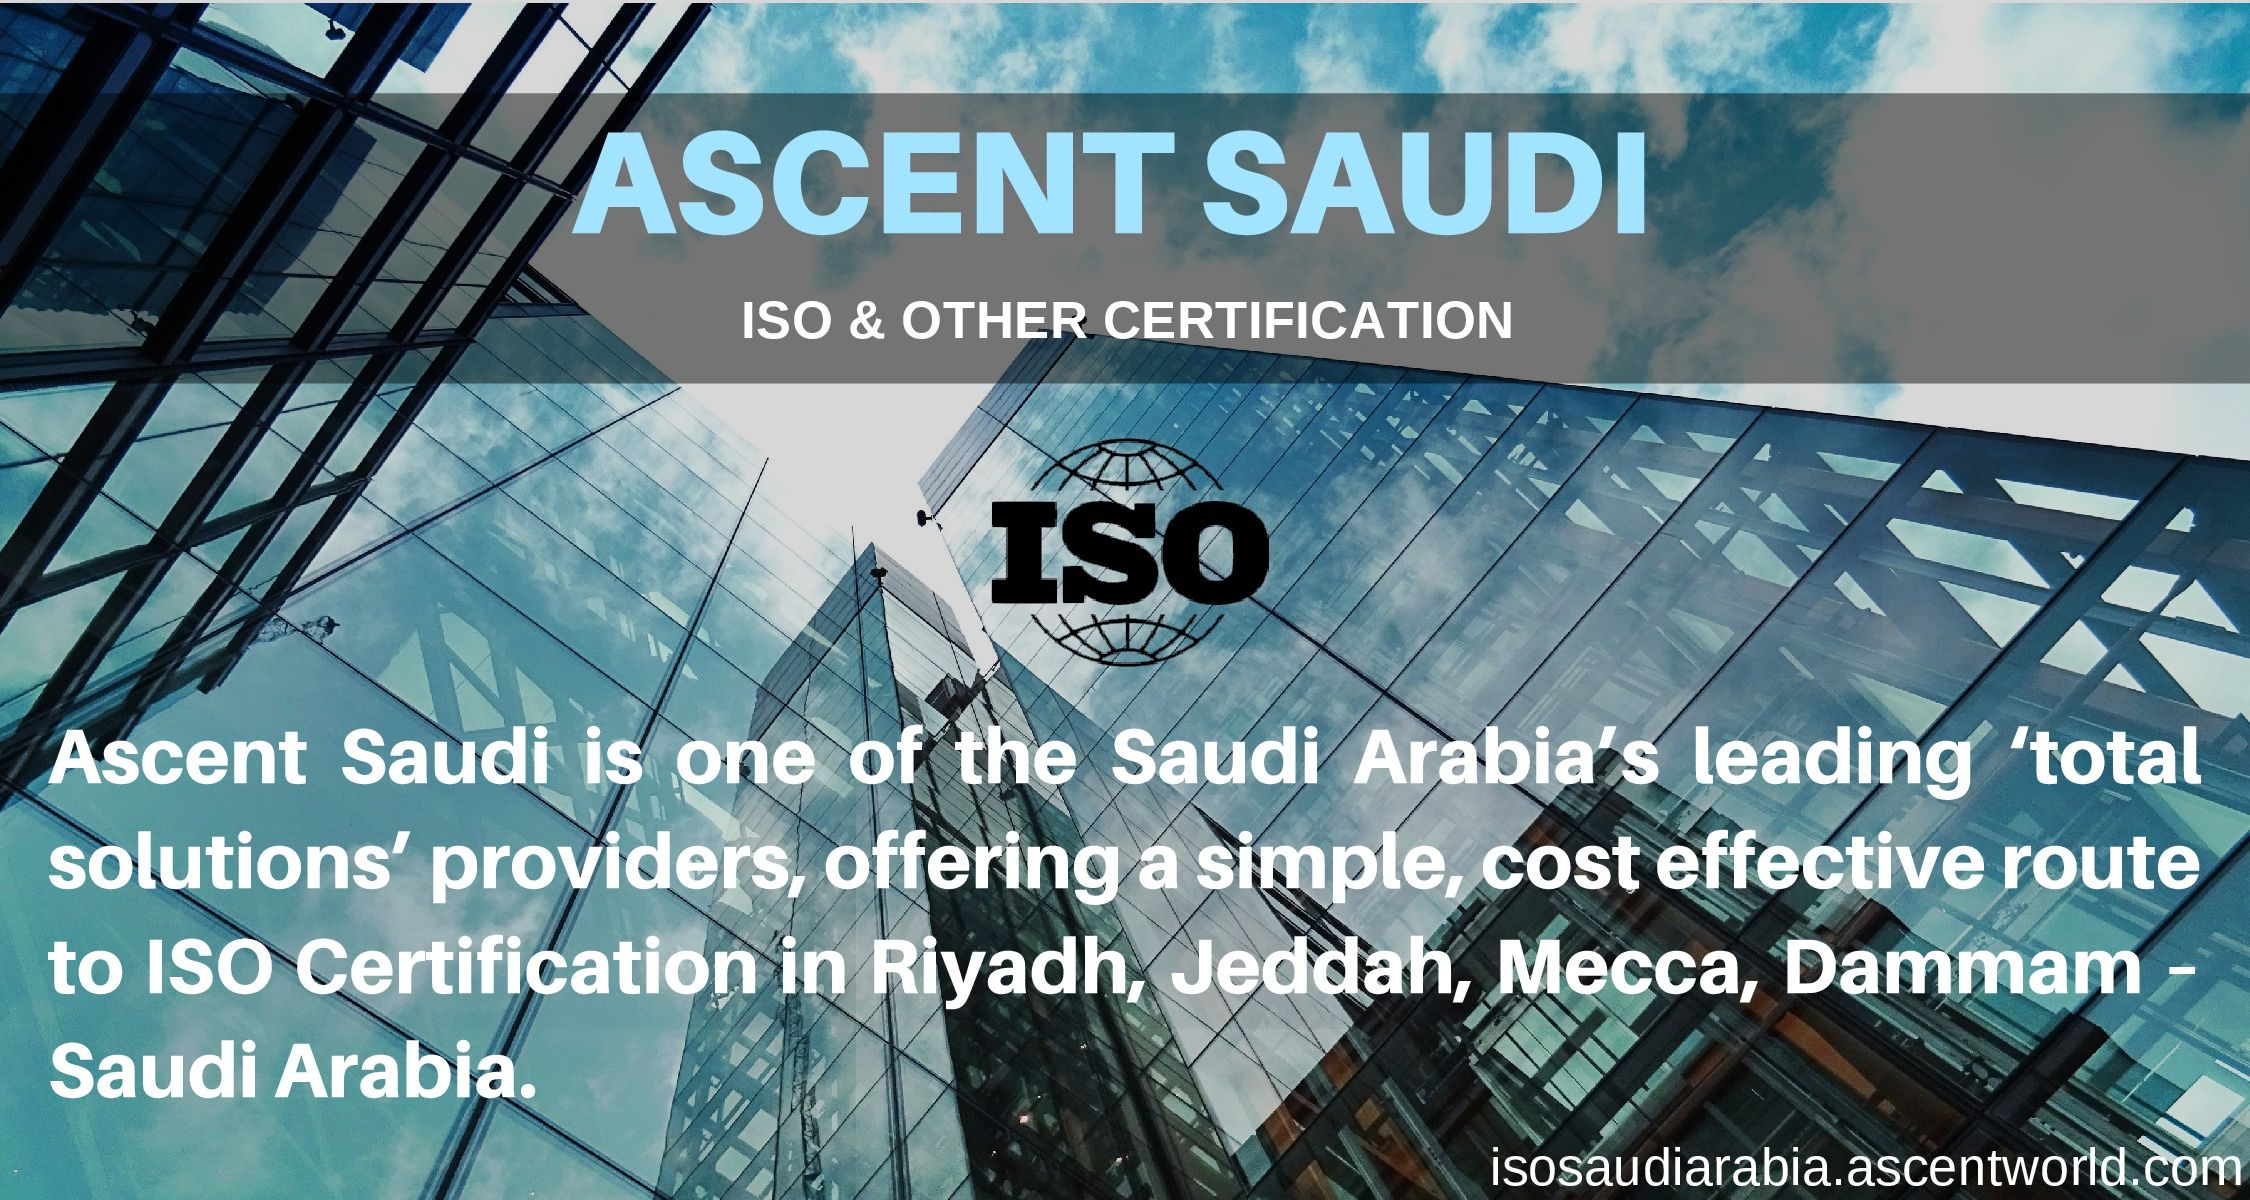 Obtain iso certification with worlds leading total